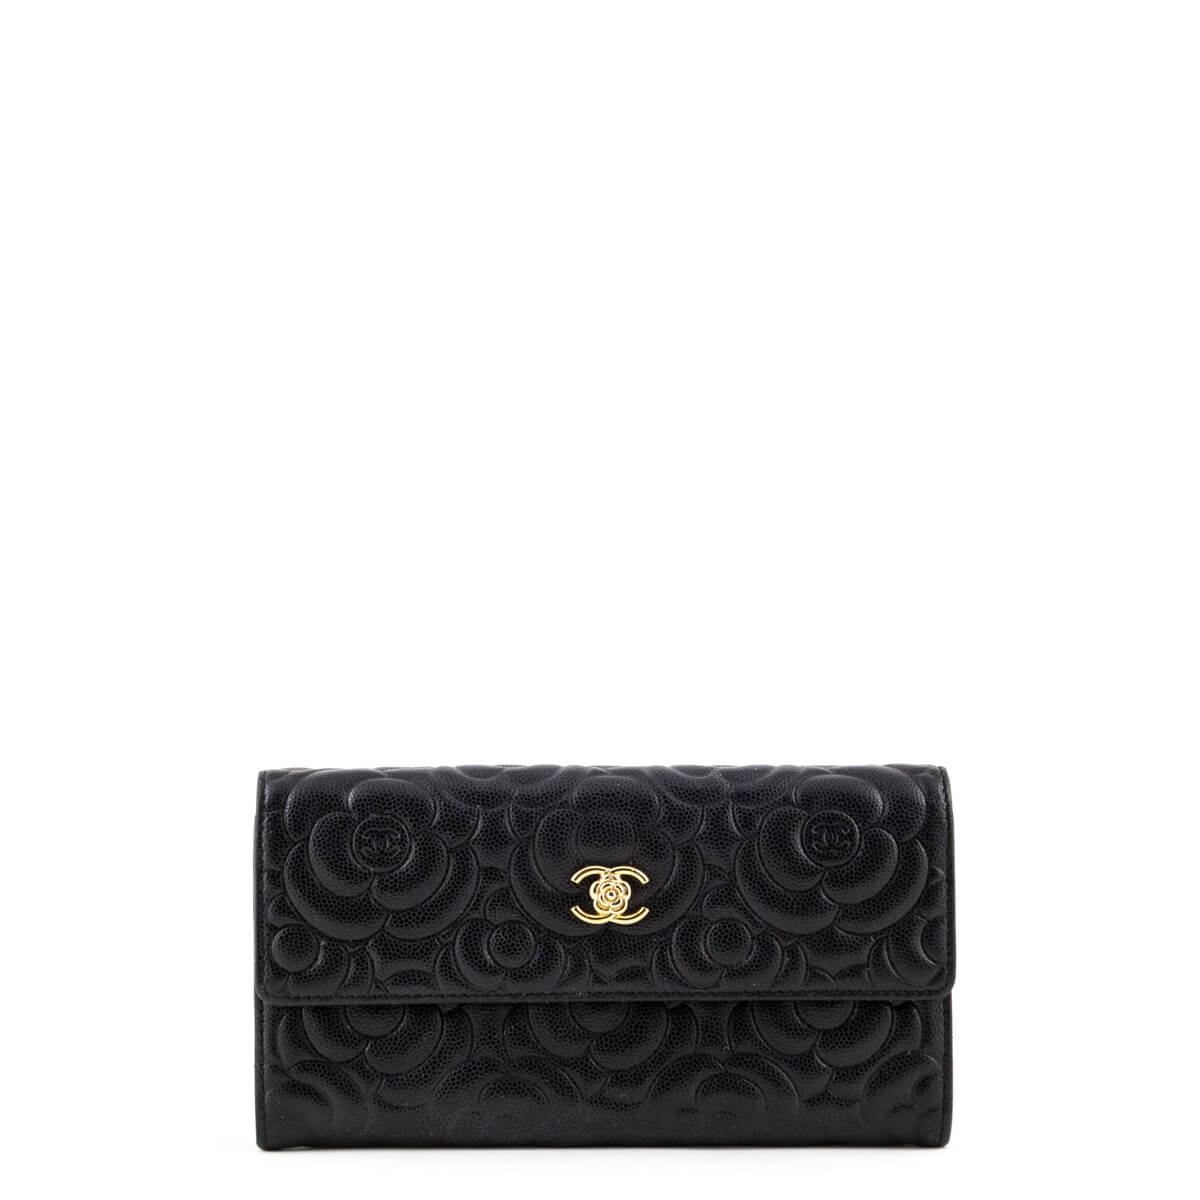 f359c50c88a6fb Chanel Black Caviar Camellia Embossed Flap Wallet - LOVE that BAG - Preowned  Authentic Designer Handbags ...